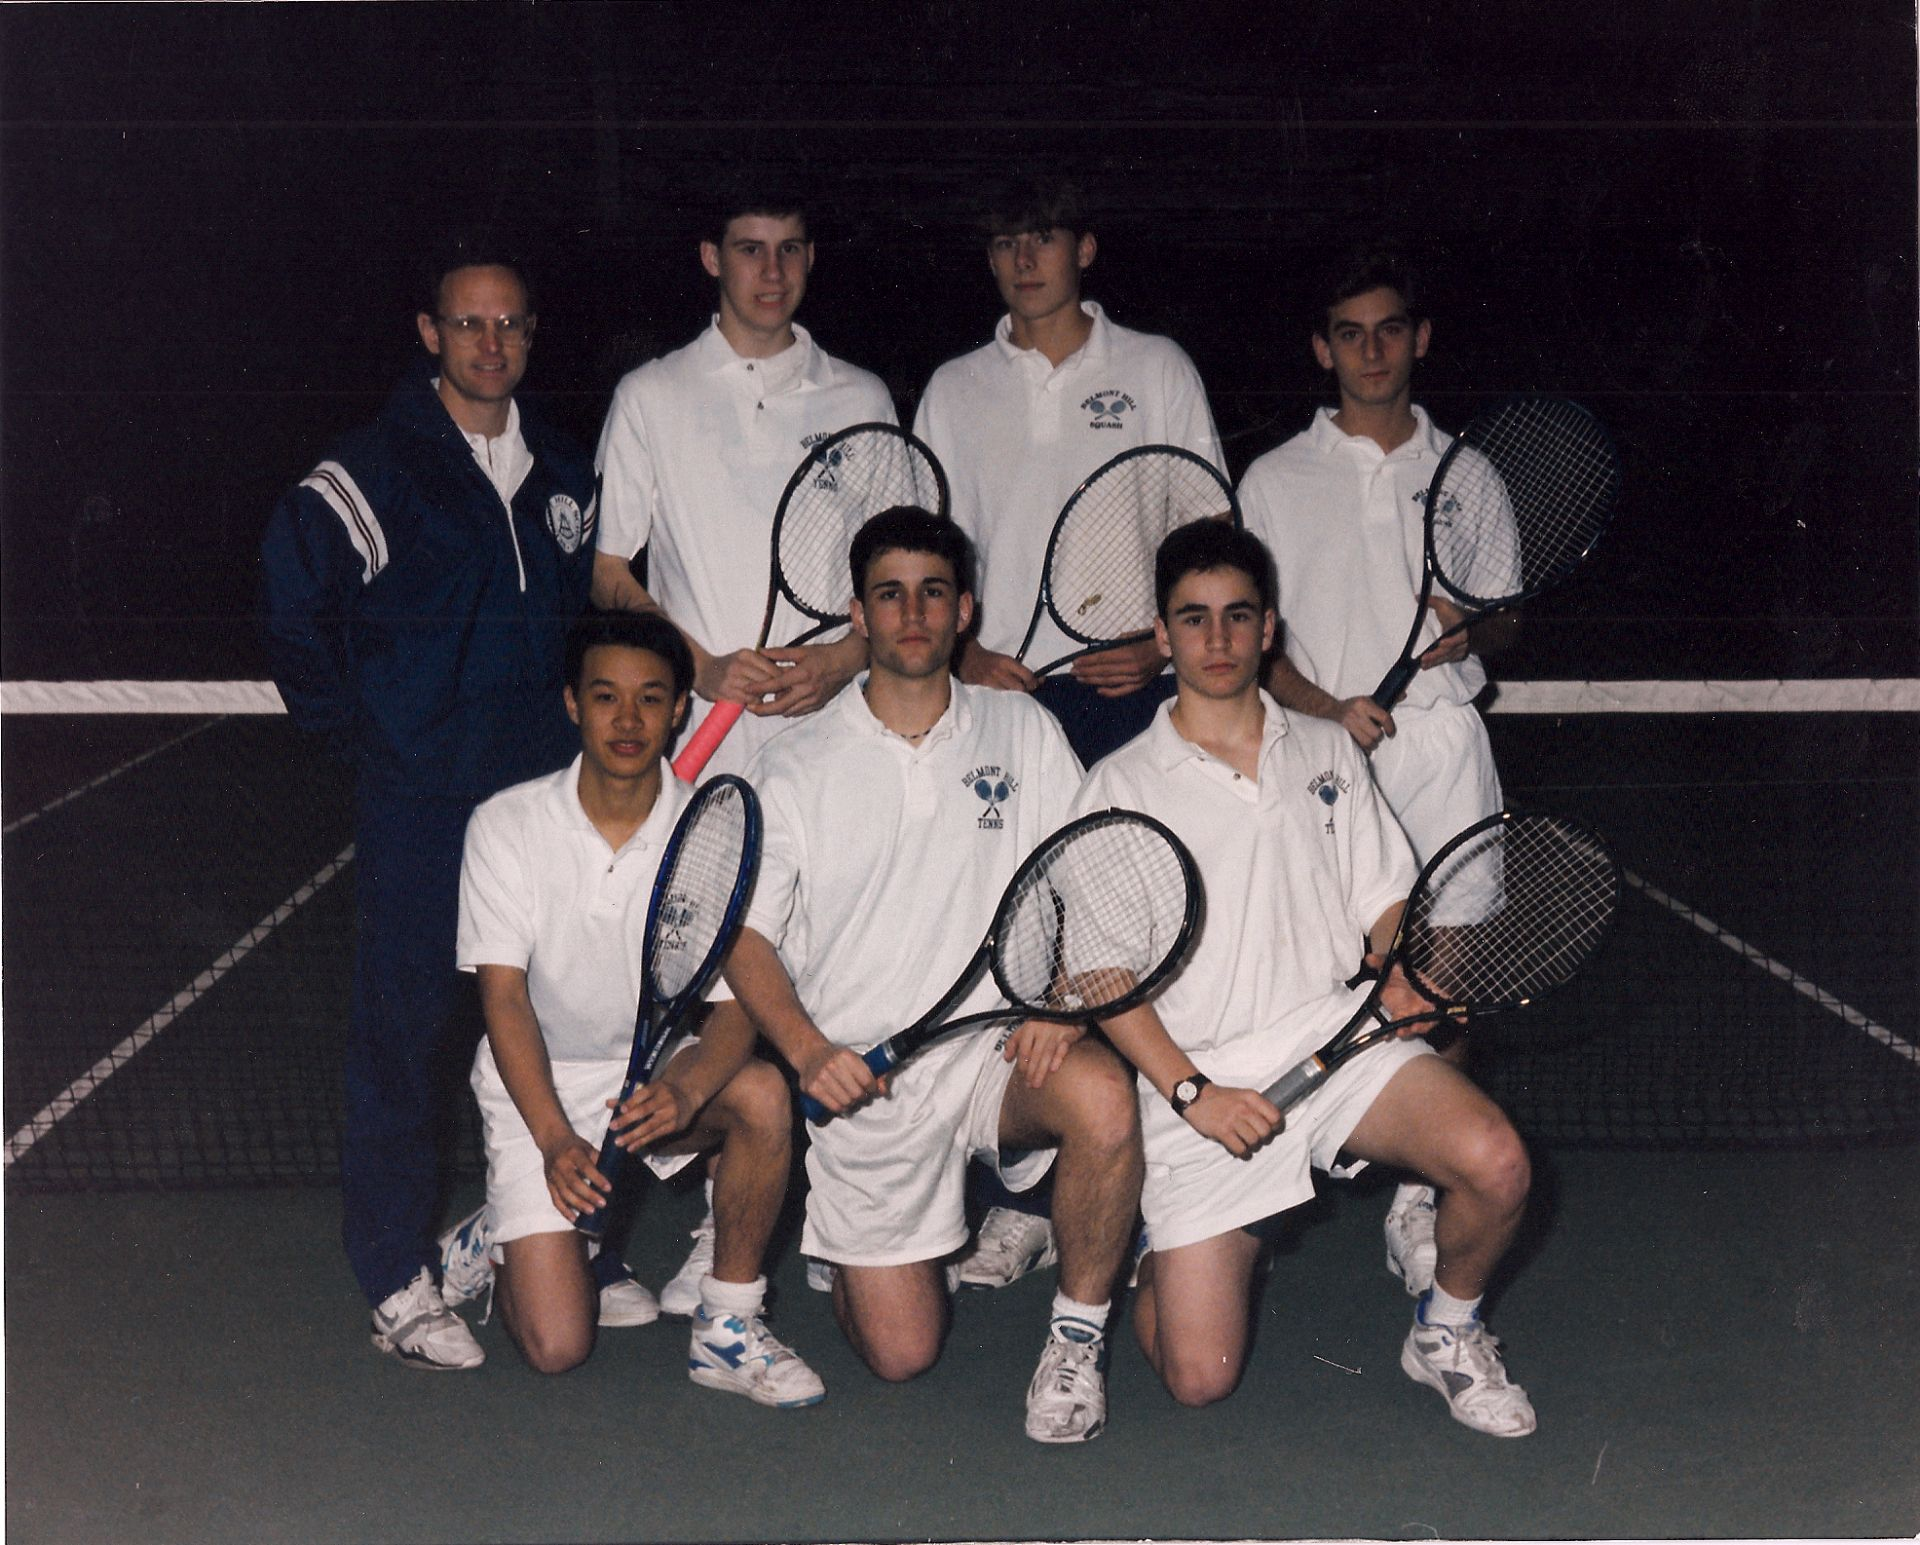 Front Row (left to right):  E. Lum, N. Keyes-Grevelis, S. Keyes-Grevelis Back Row:  Coach Hunt, J. Brennan, B. Guy, J. Boxer